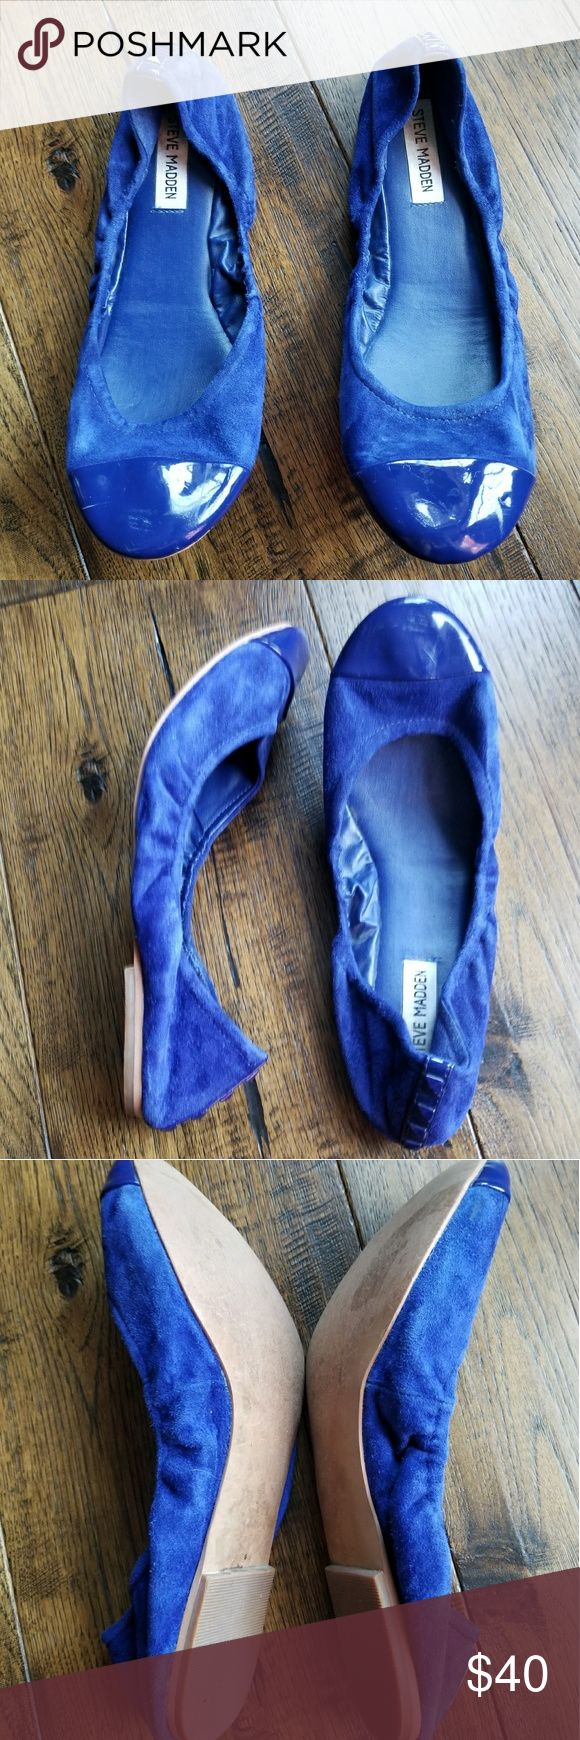 Steve Madden FAVORYTE Cobalt Blue ballet flats Steve Madden FAVORYTE Cobalt Blue ballet flats. Size 10 M. Excellent used condition. Love the electric blue color of these shoes. Steve Madden Shoes Flats & Loafers